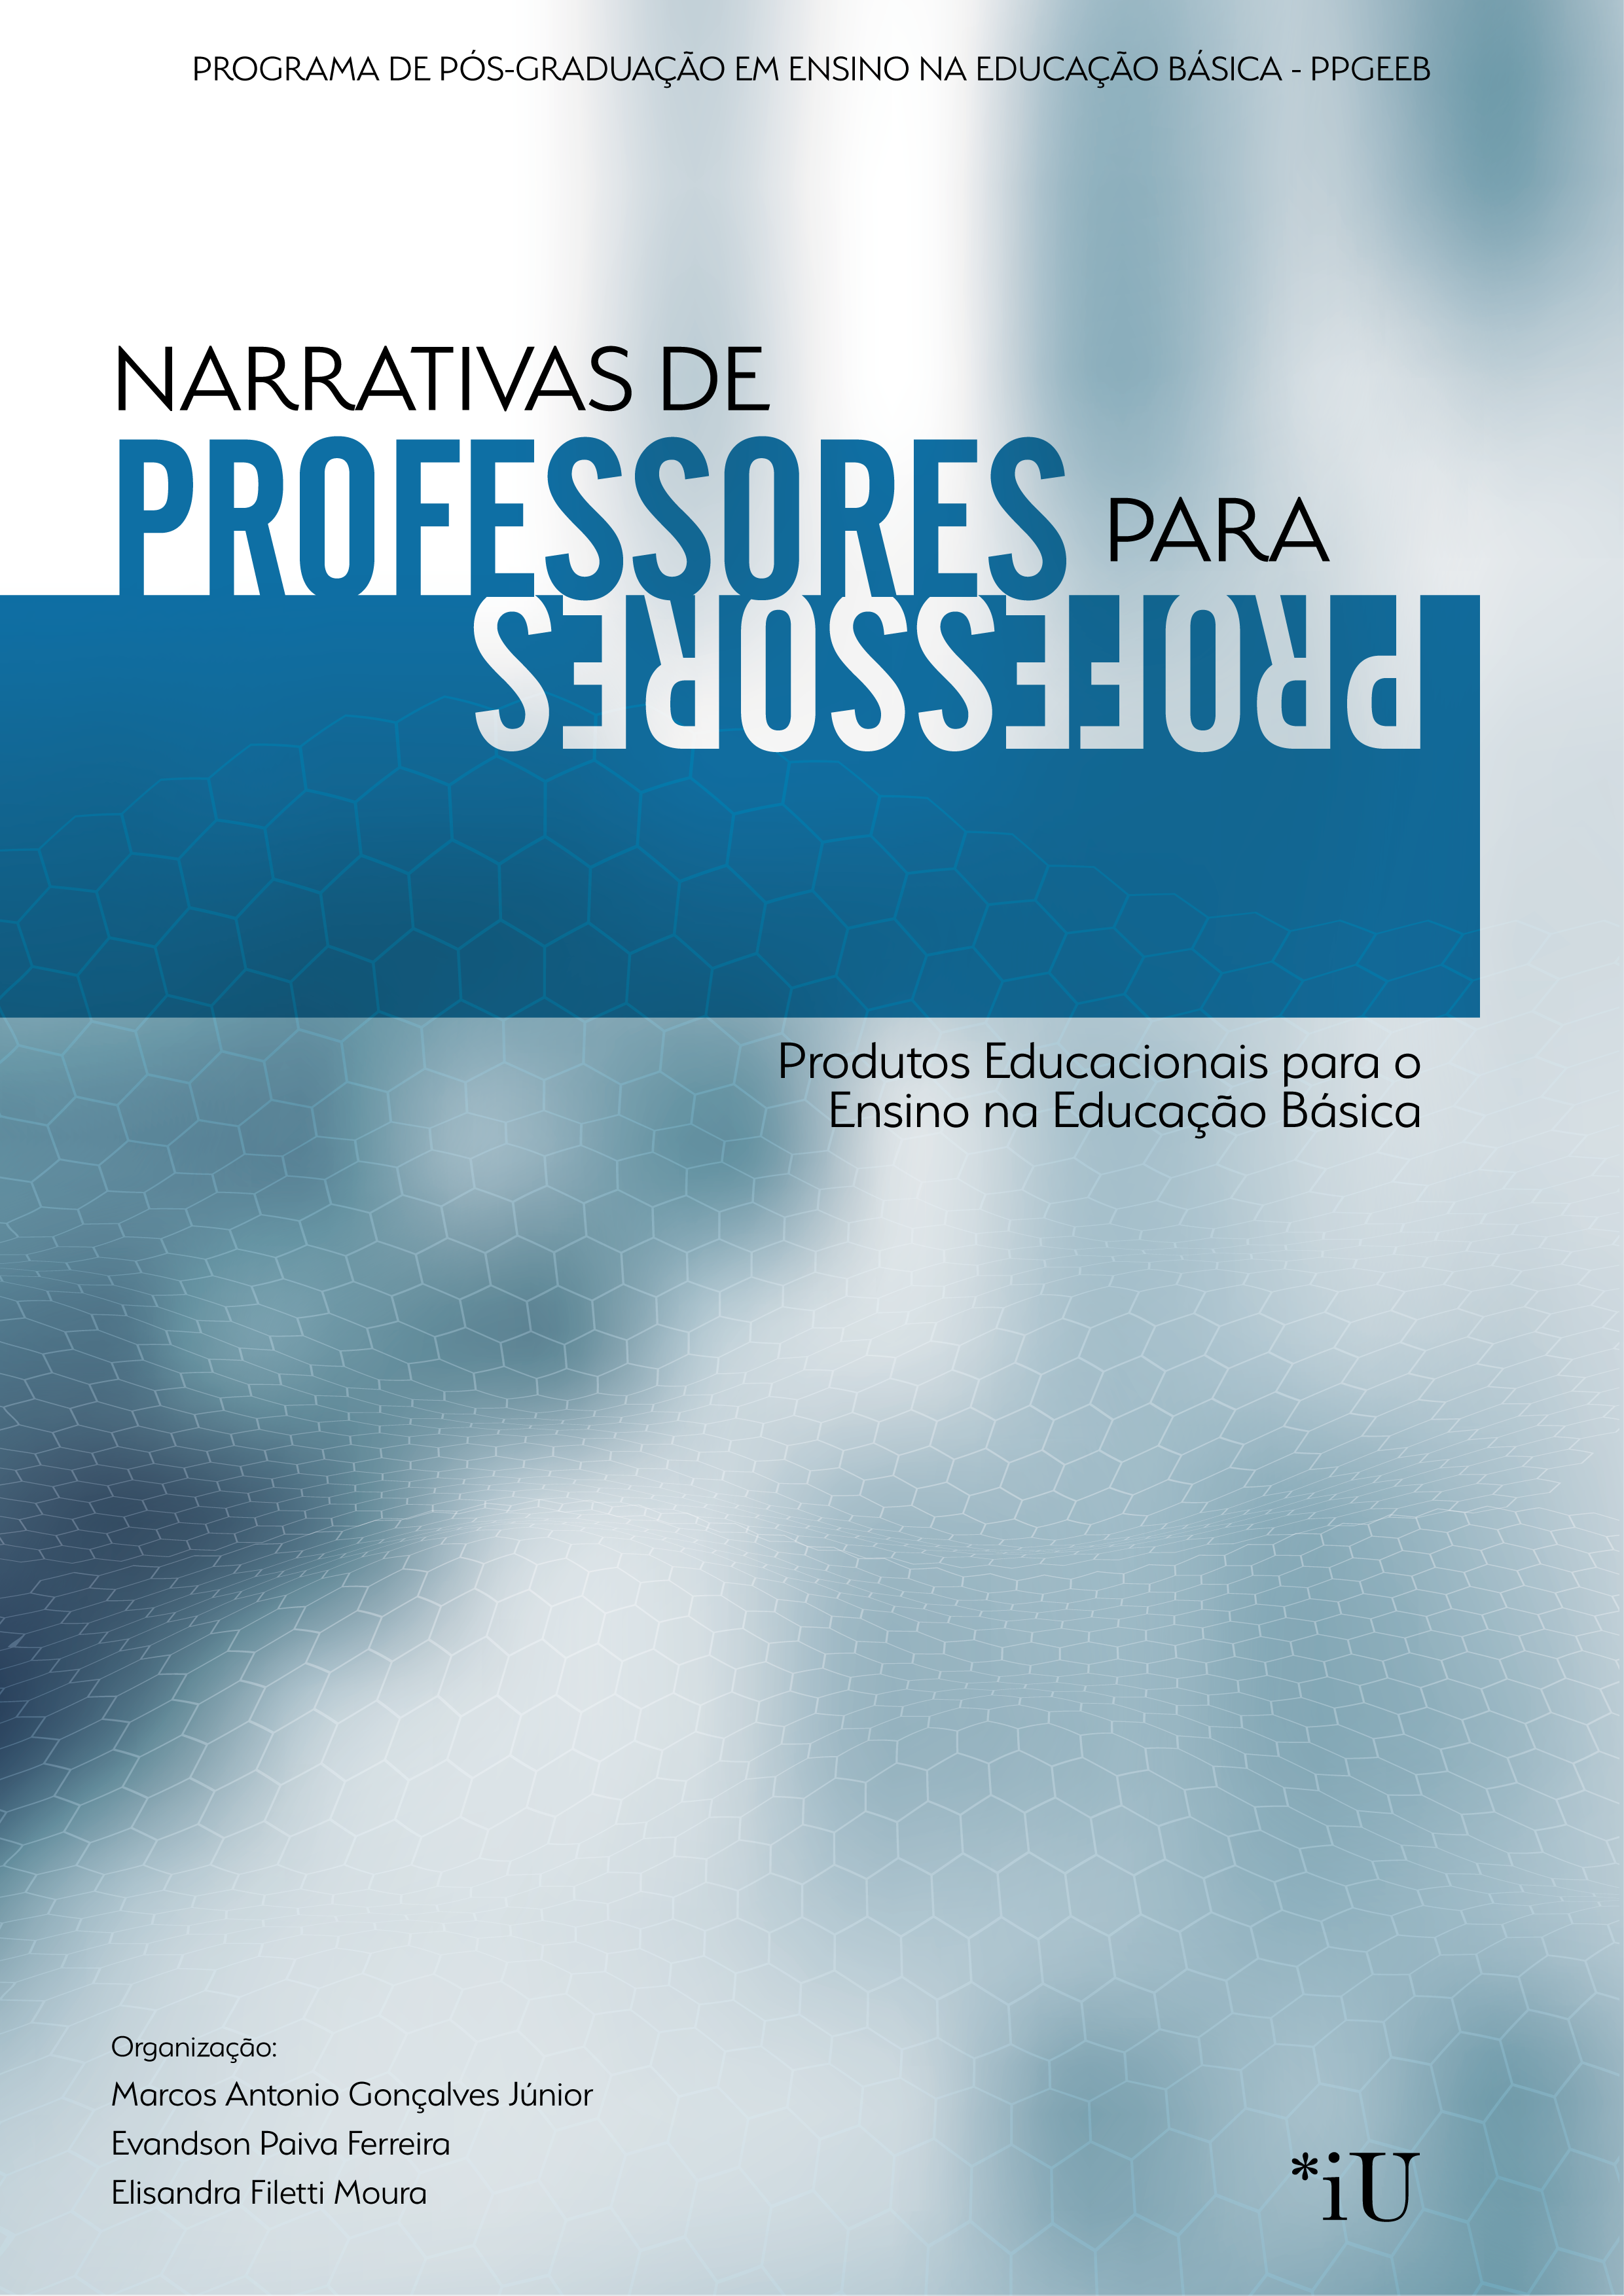 Capa - narrativa professores